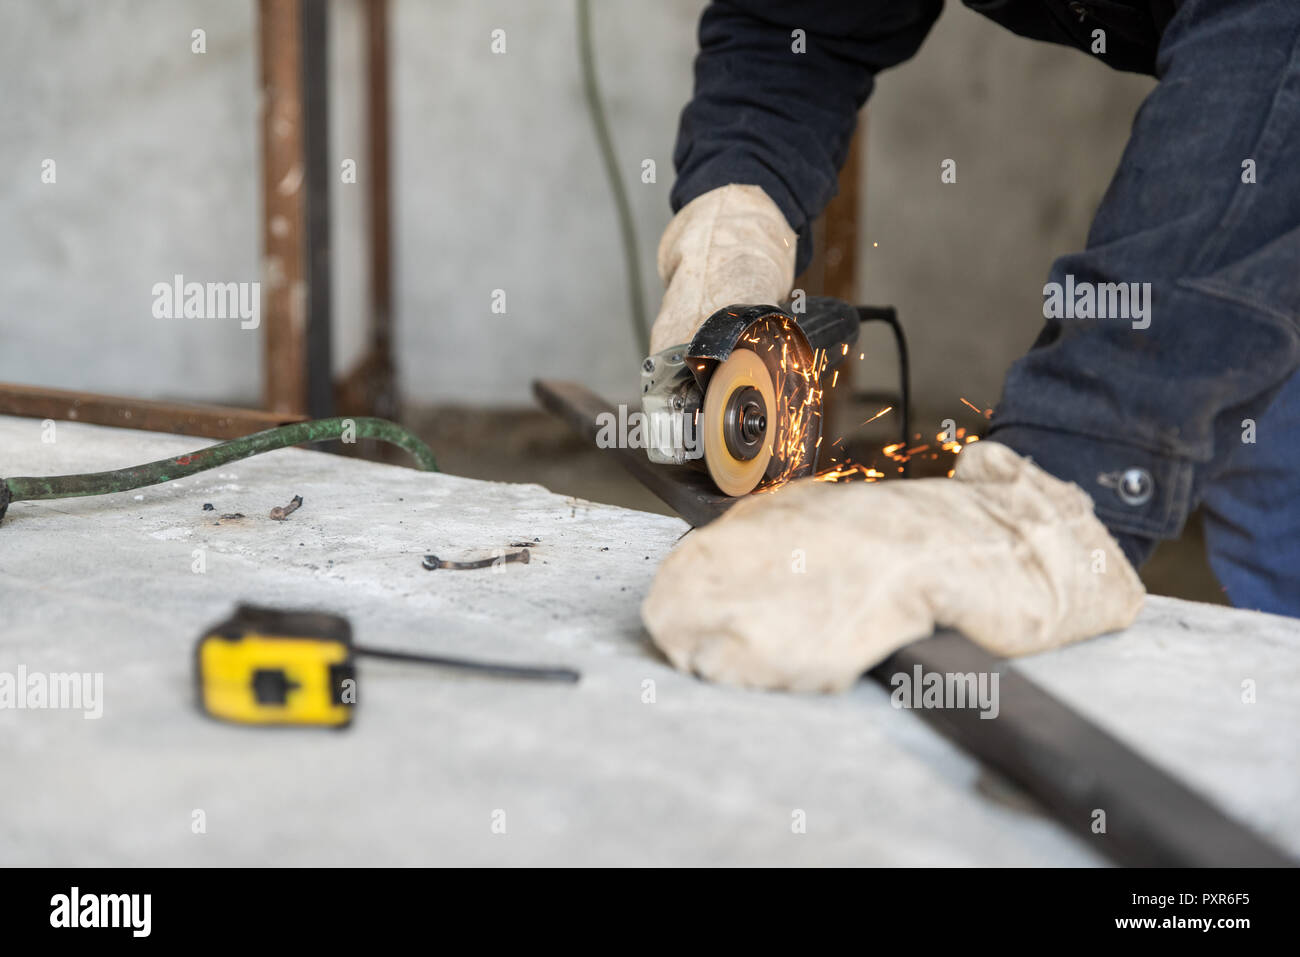 Metal cutting process with disc grinder. Hobby and work at home workshop. People at work, skills and abilities - Stock Image